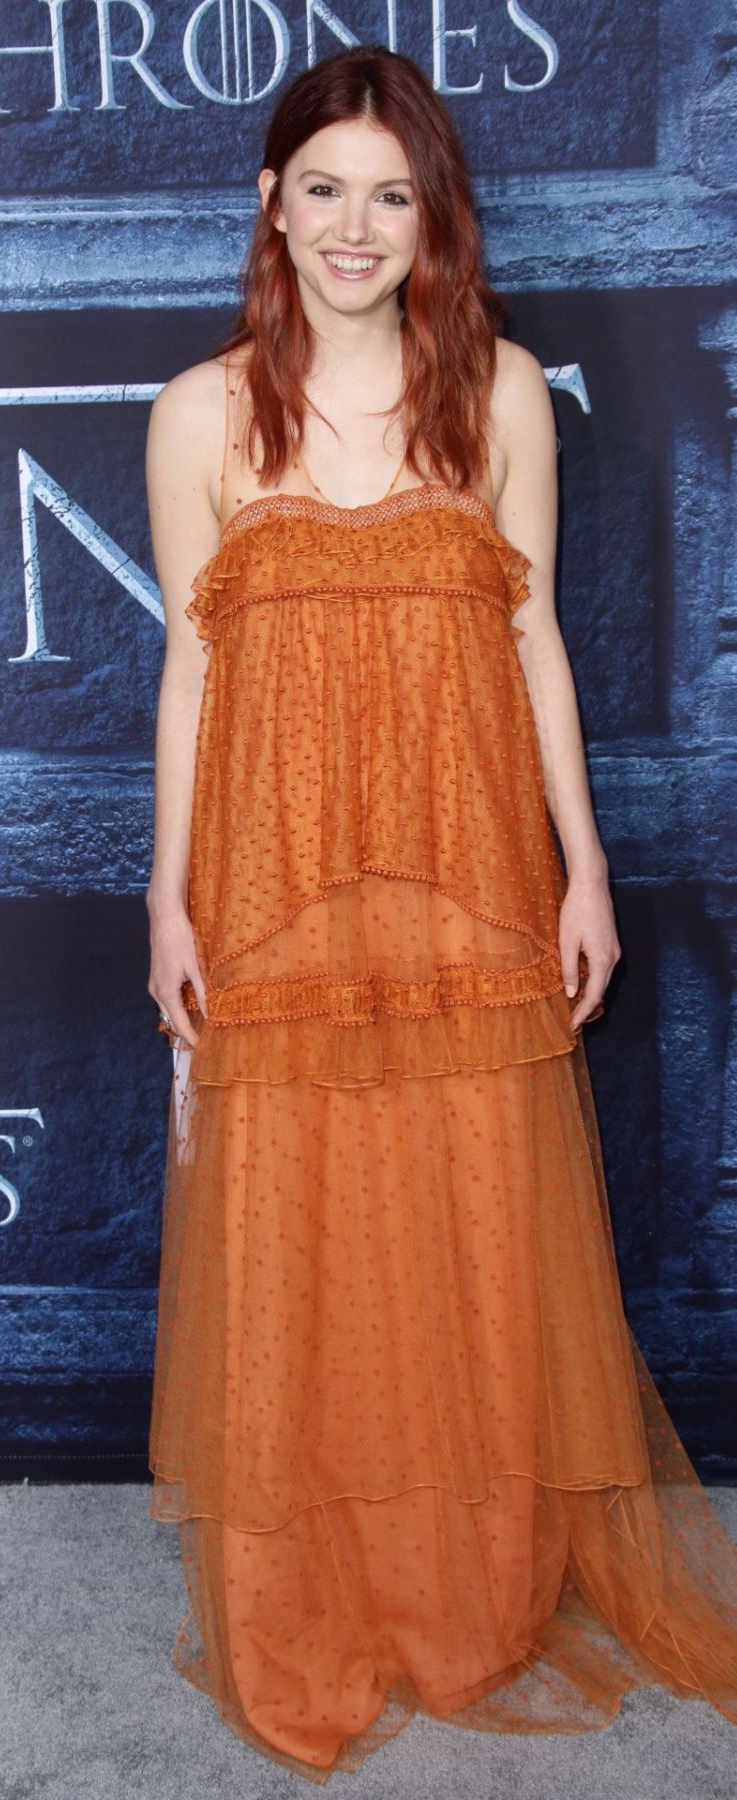 hannah-murray-at-game-of-thrones-season-6-premiere-in-la_9.jpg